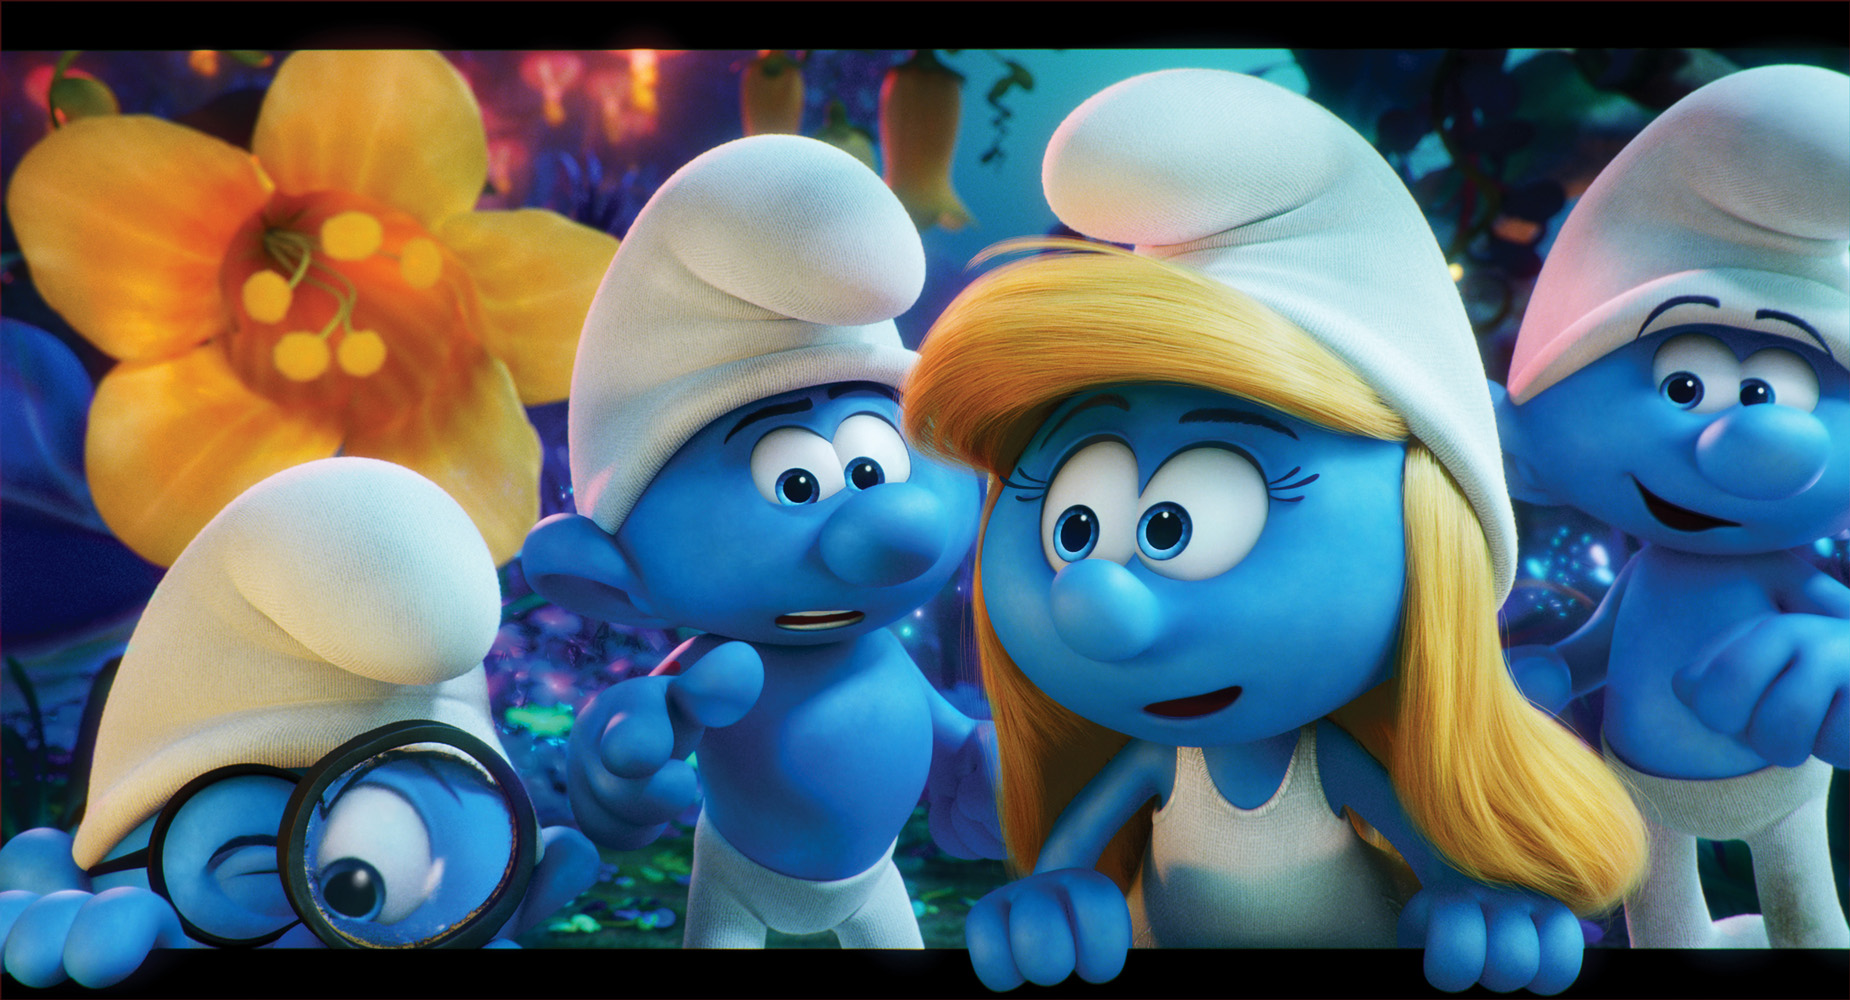 Brainy (Danny Pudi), Hefty (Joe Manganiello), Smurfette (Demi Lovato) and Clumsy (Jack McBrayer) embark on an exciting and thrilling race through the Forbidden Forest. Photo courtesy of Columbia Pictures